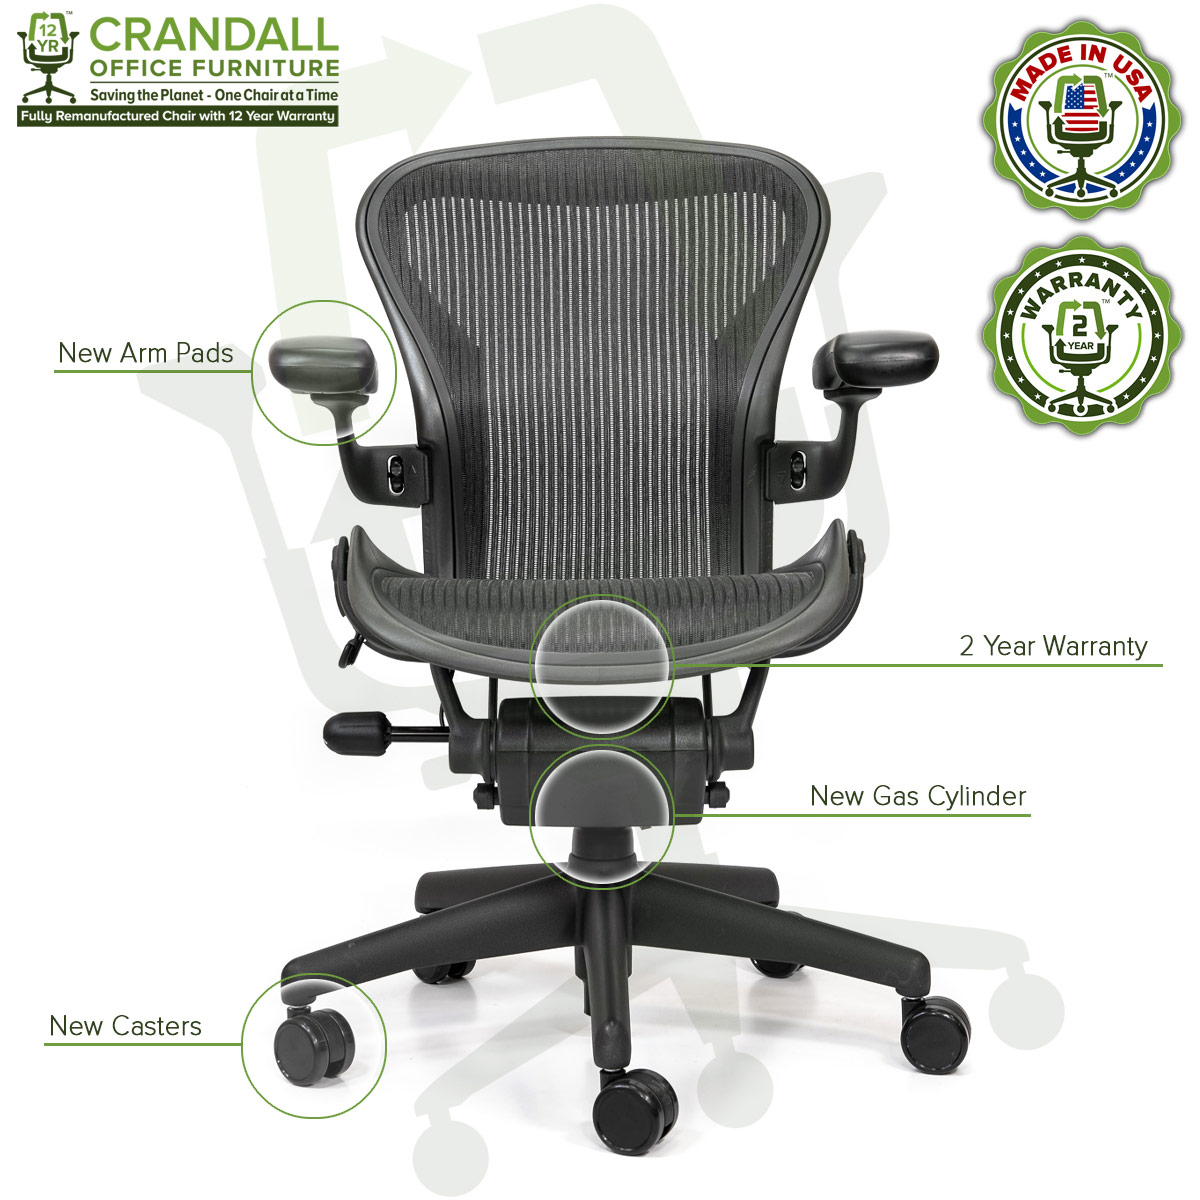 Crandall Office Refurbished Herman Miller Aeron Chair - Size A - 0006